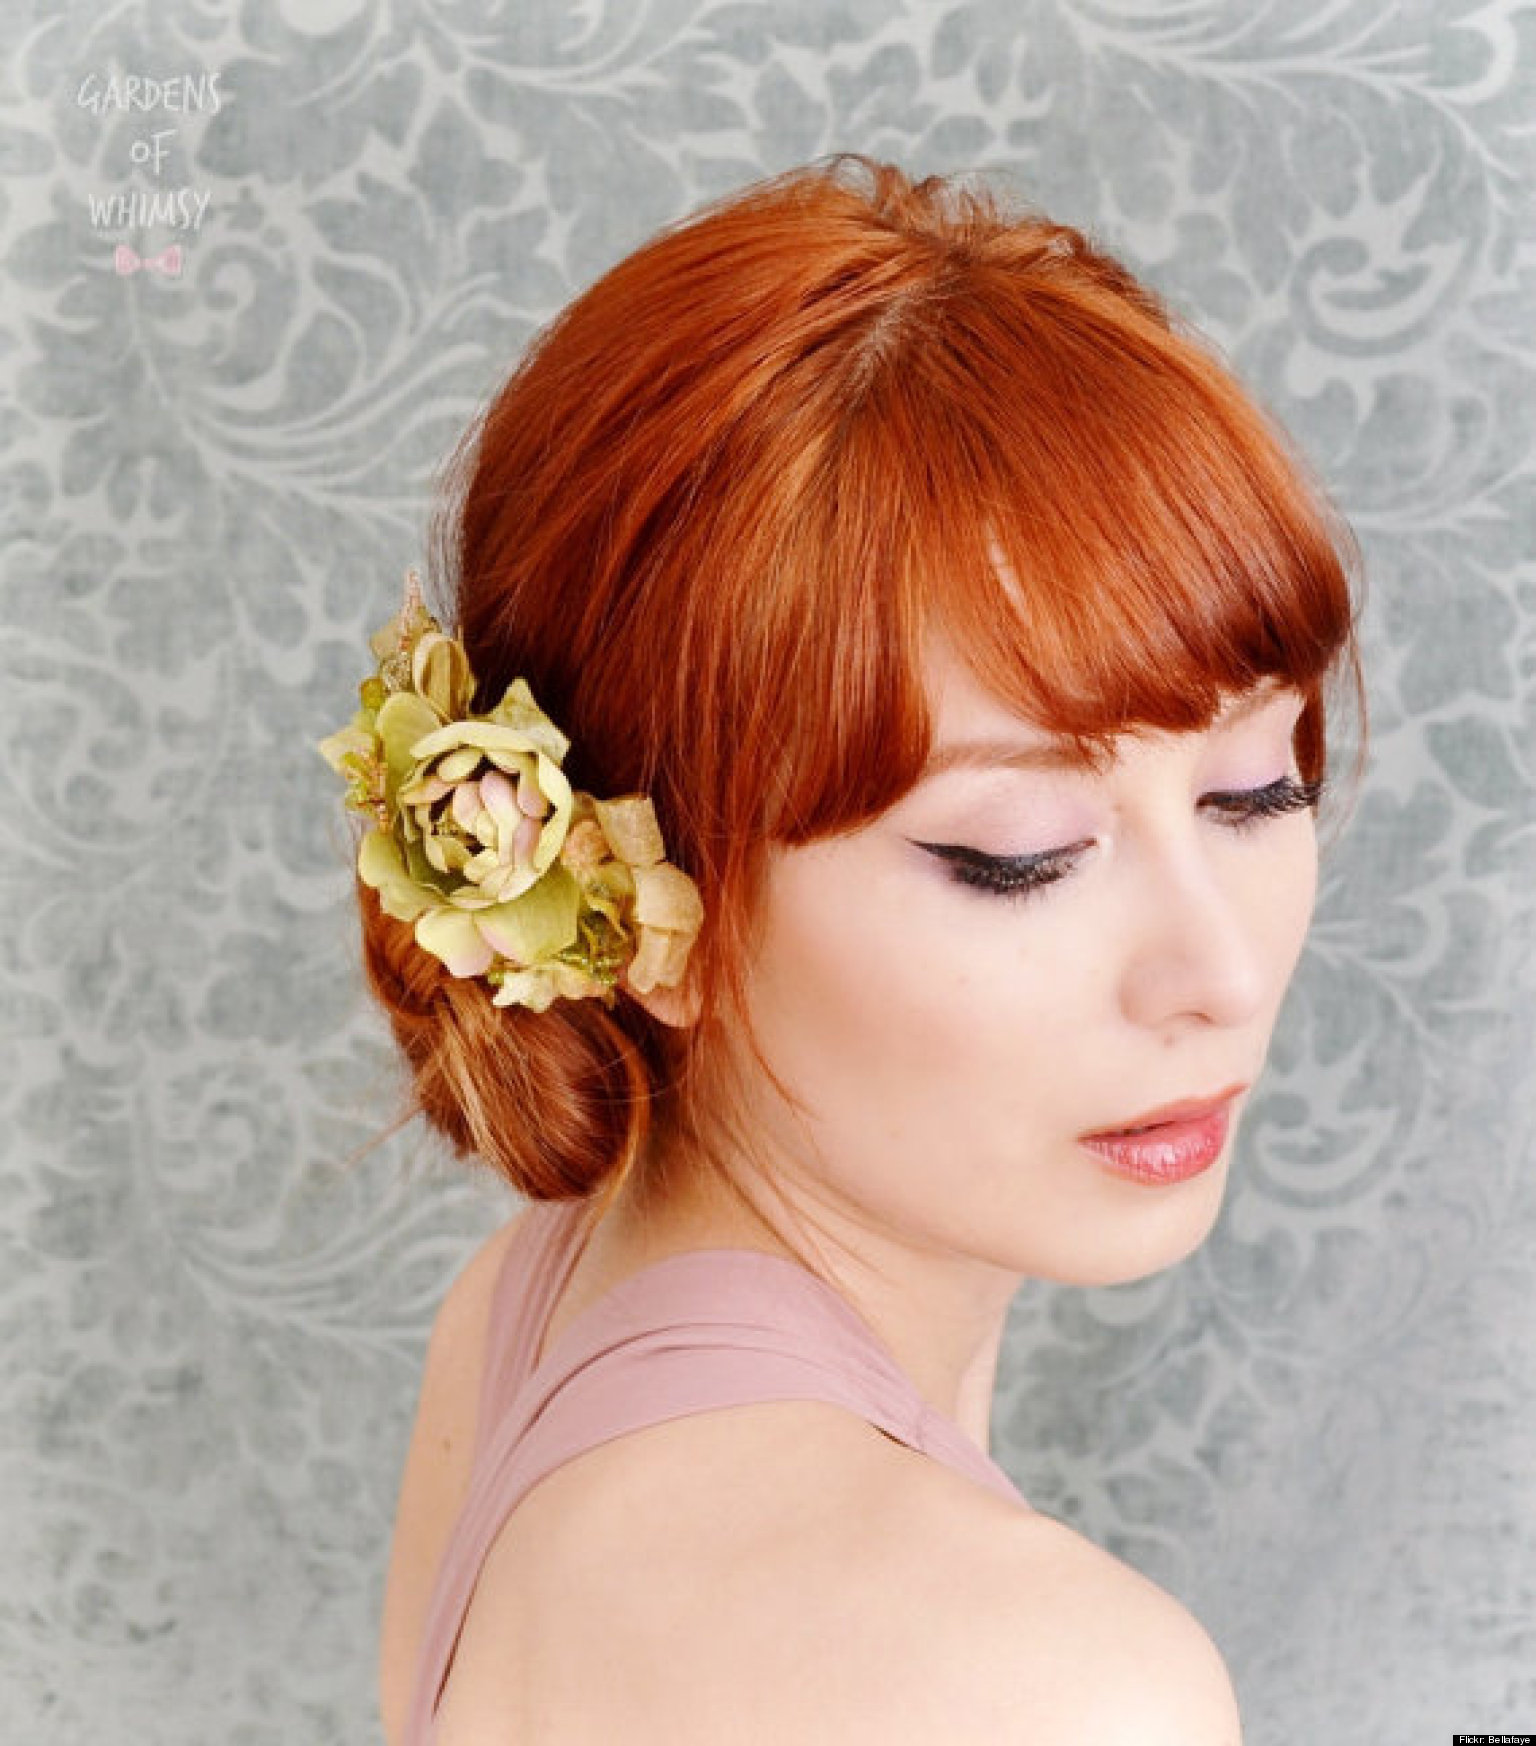 Wedding Day Hairstyles: Wedding Hair: A Guide To Your Best Big Day 'Do